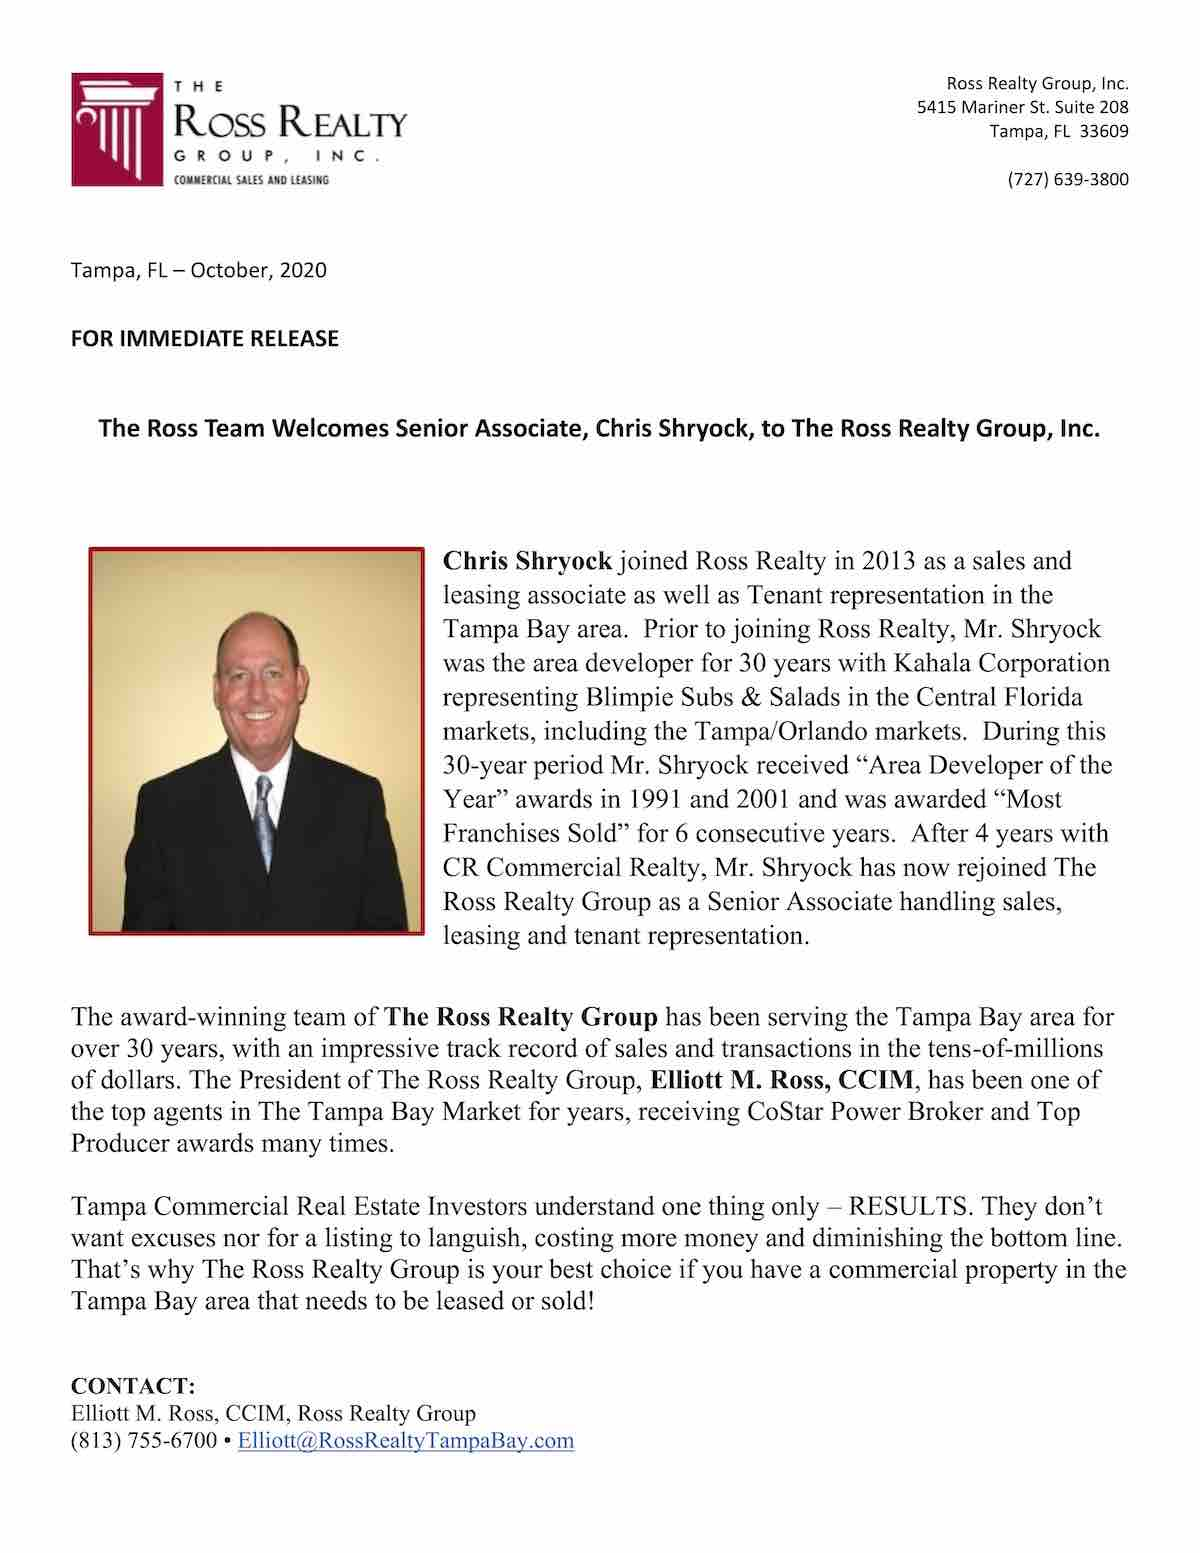 Tampa Commercial Real Estate - Chris Shryock Press Release